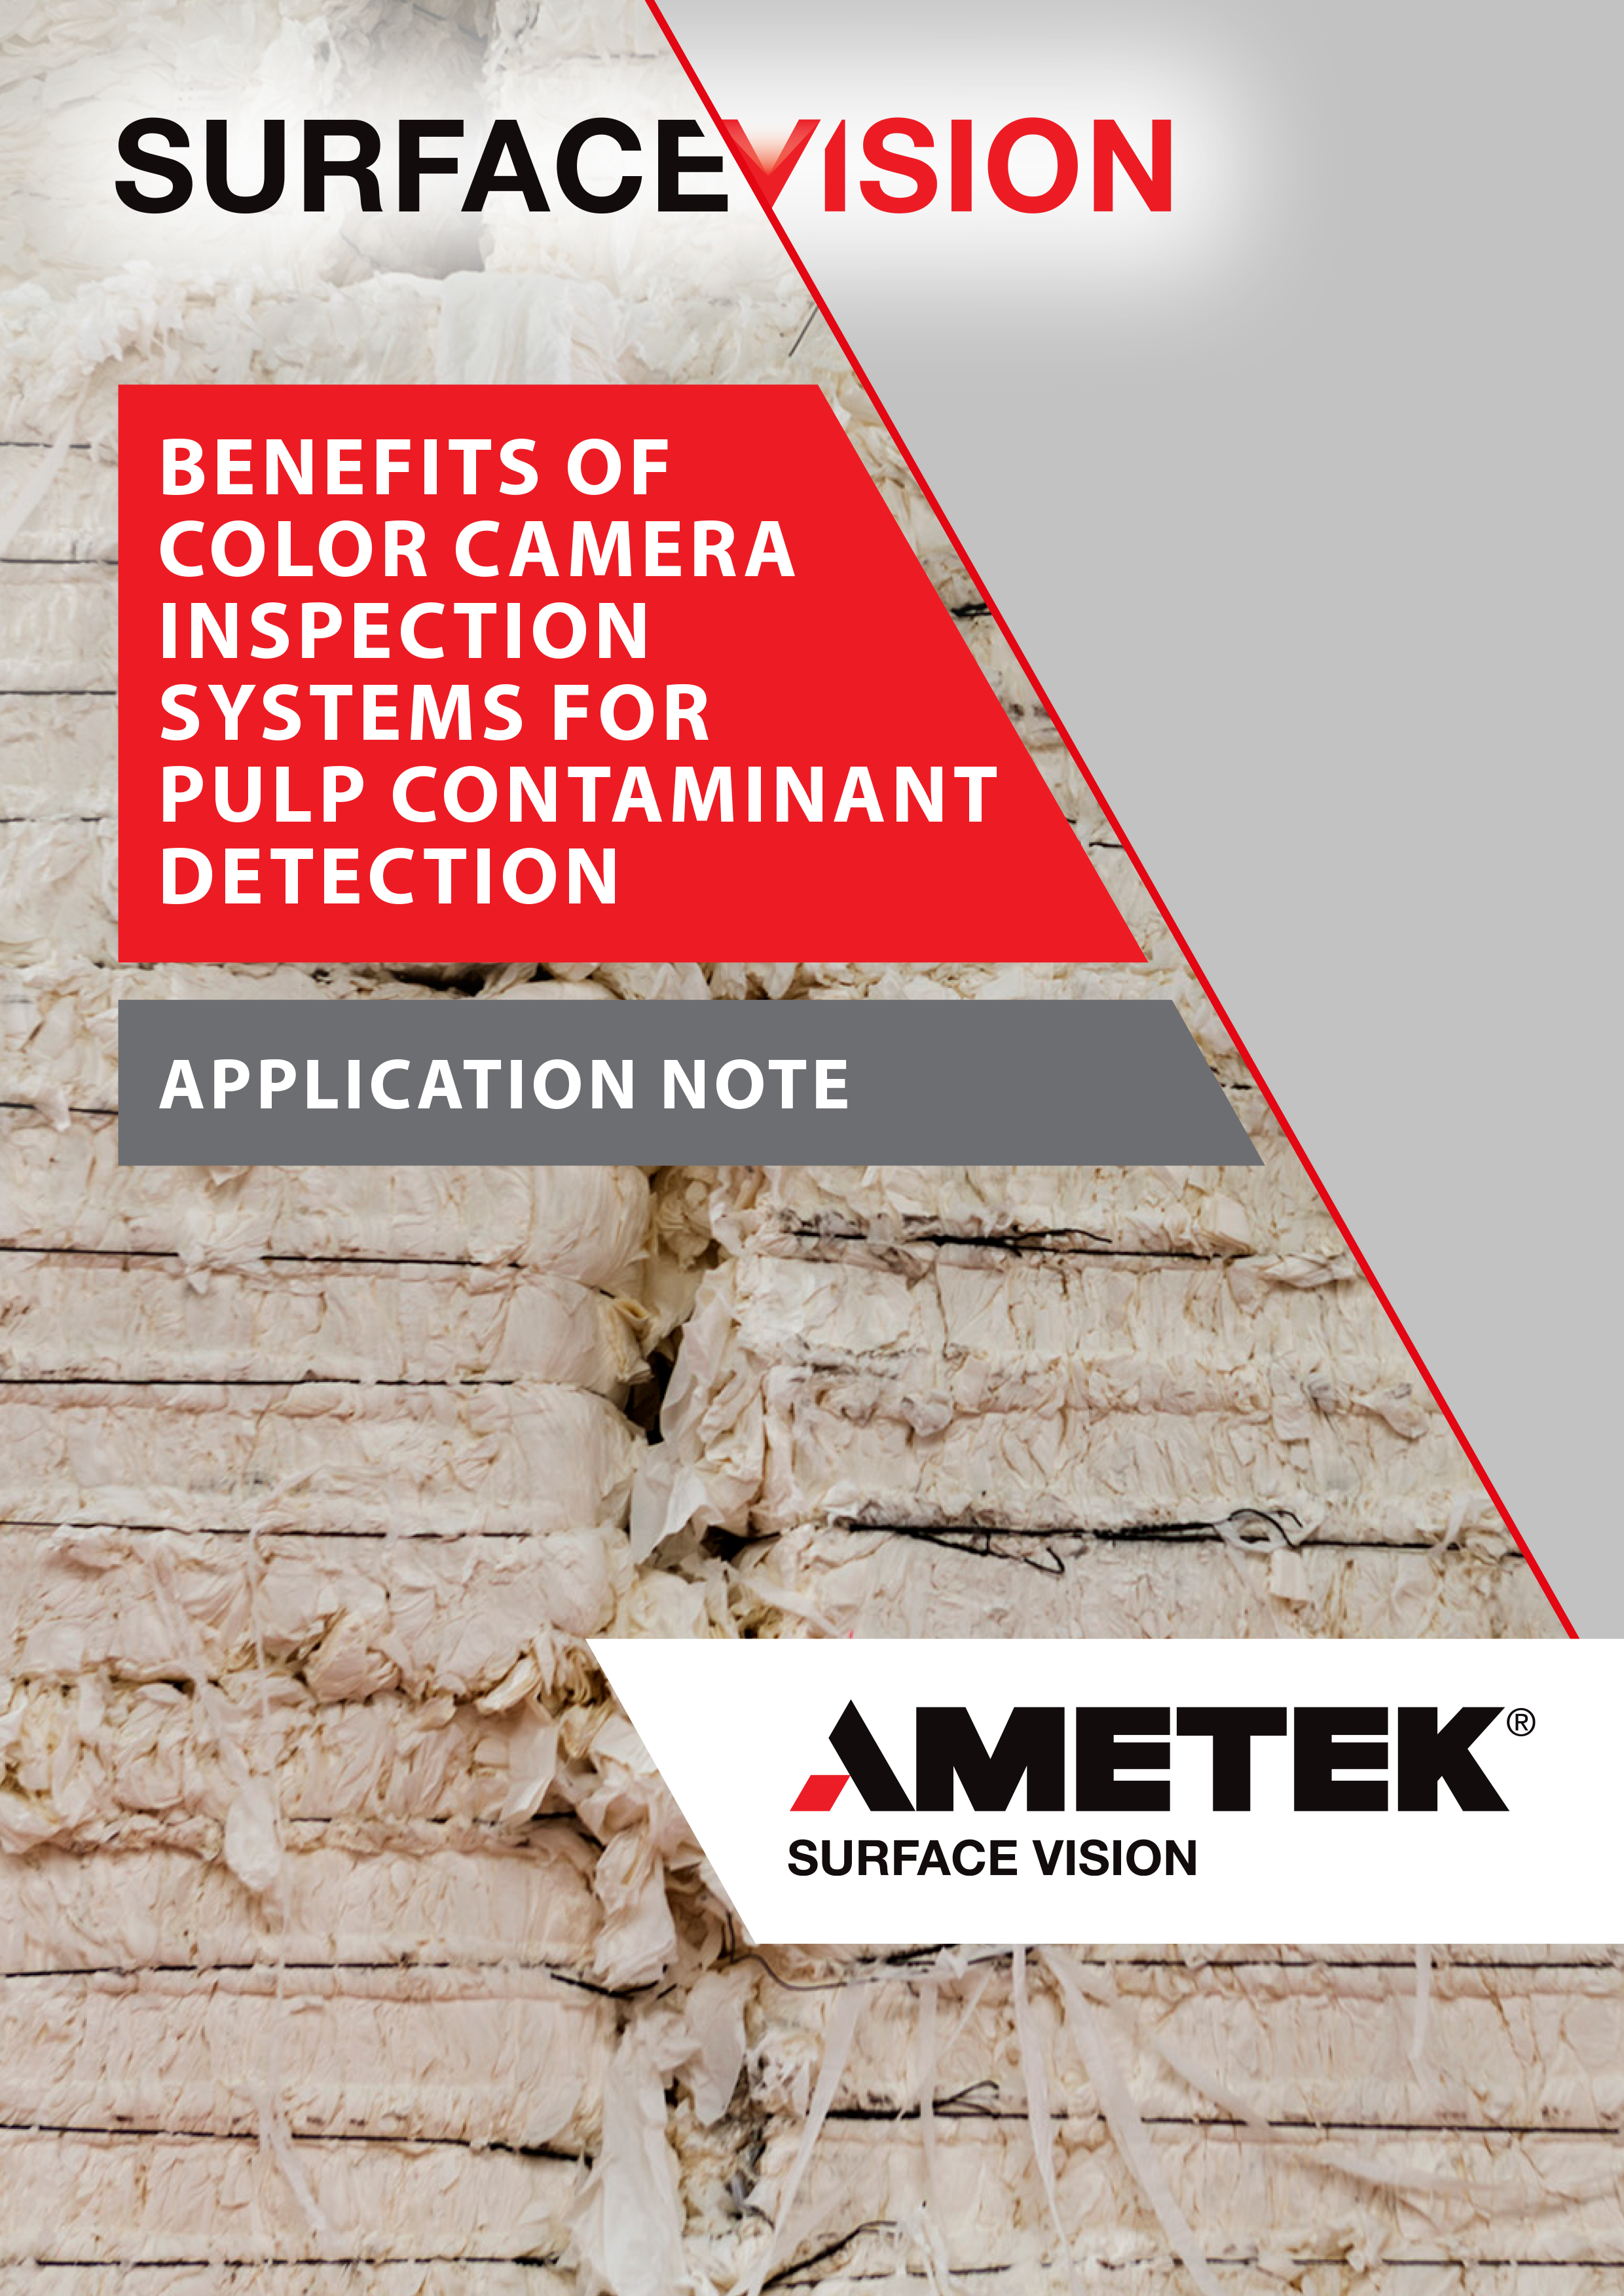 BENEFITS OF COLOR CAMERA INSPECTION SYSTEMS FOR PULP CONTAMINANT DETECTION - Application Note (EN)